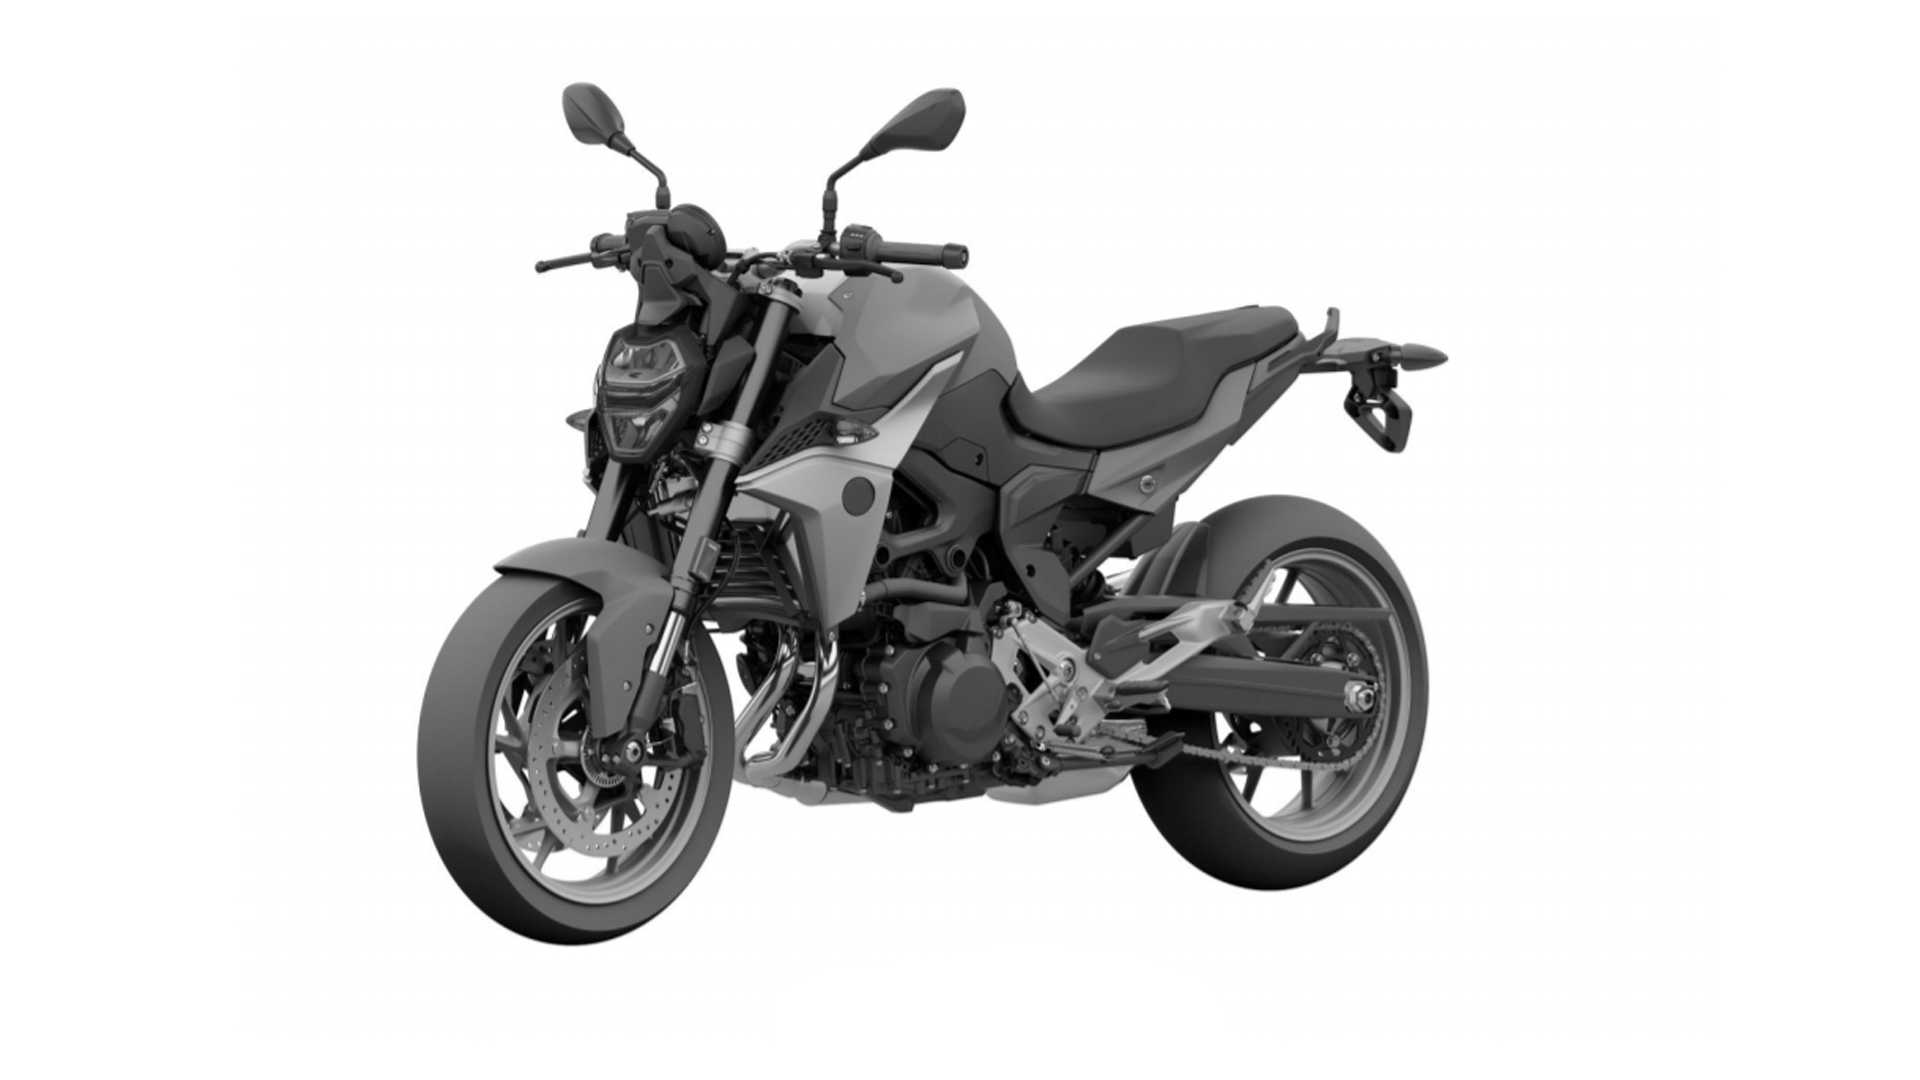 New BMW F 850 R Leaked In Brazilian Patent